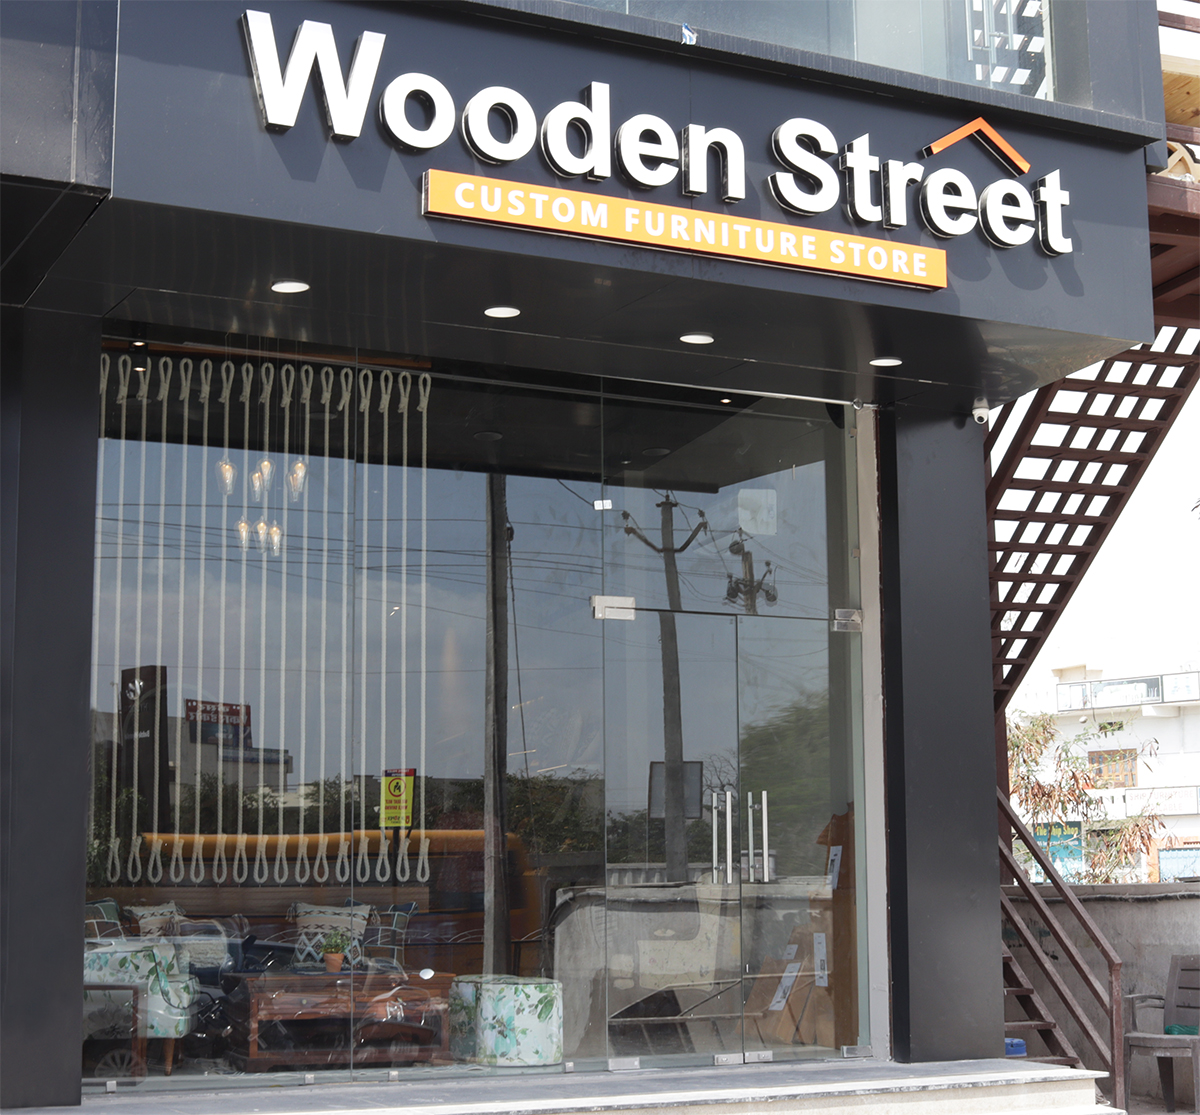 Furniture Brand WoodenStreet to Invest about $2 Million on Expansion of 50 + Stores; Strengthening Its Network within 1 Year